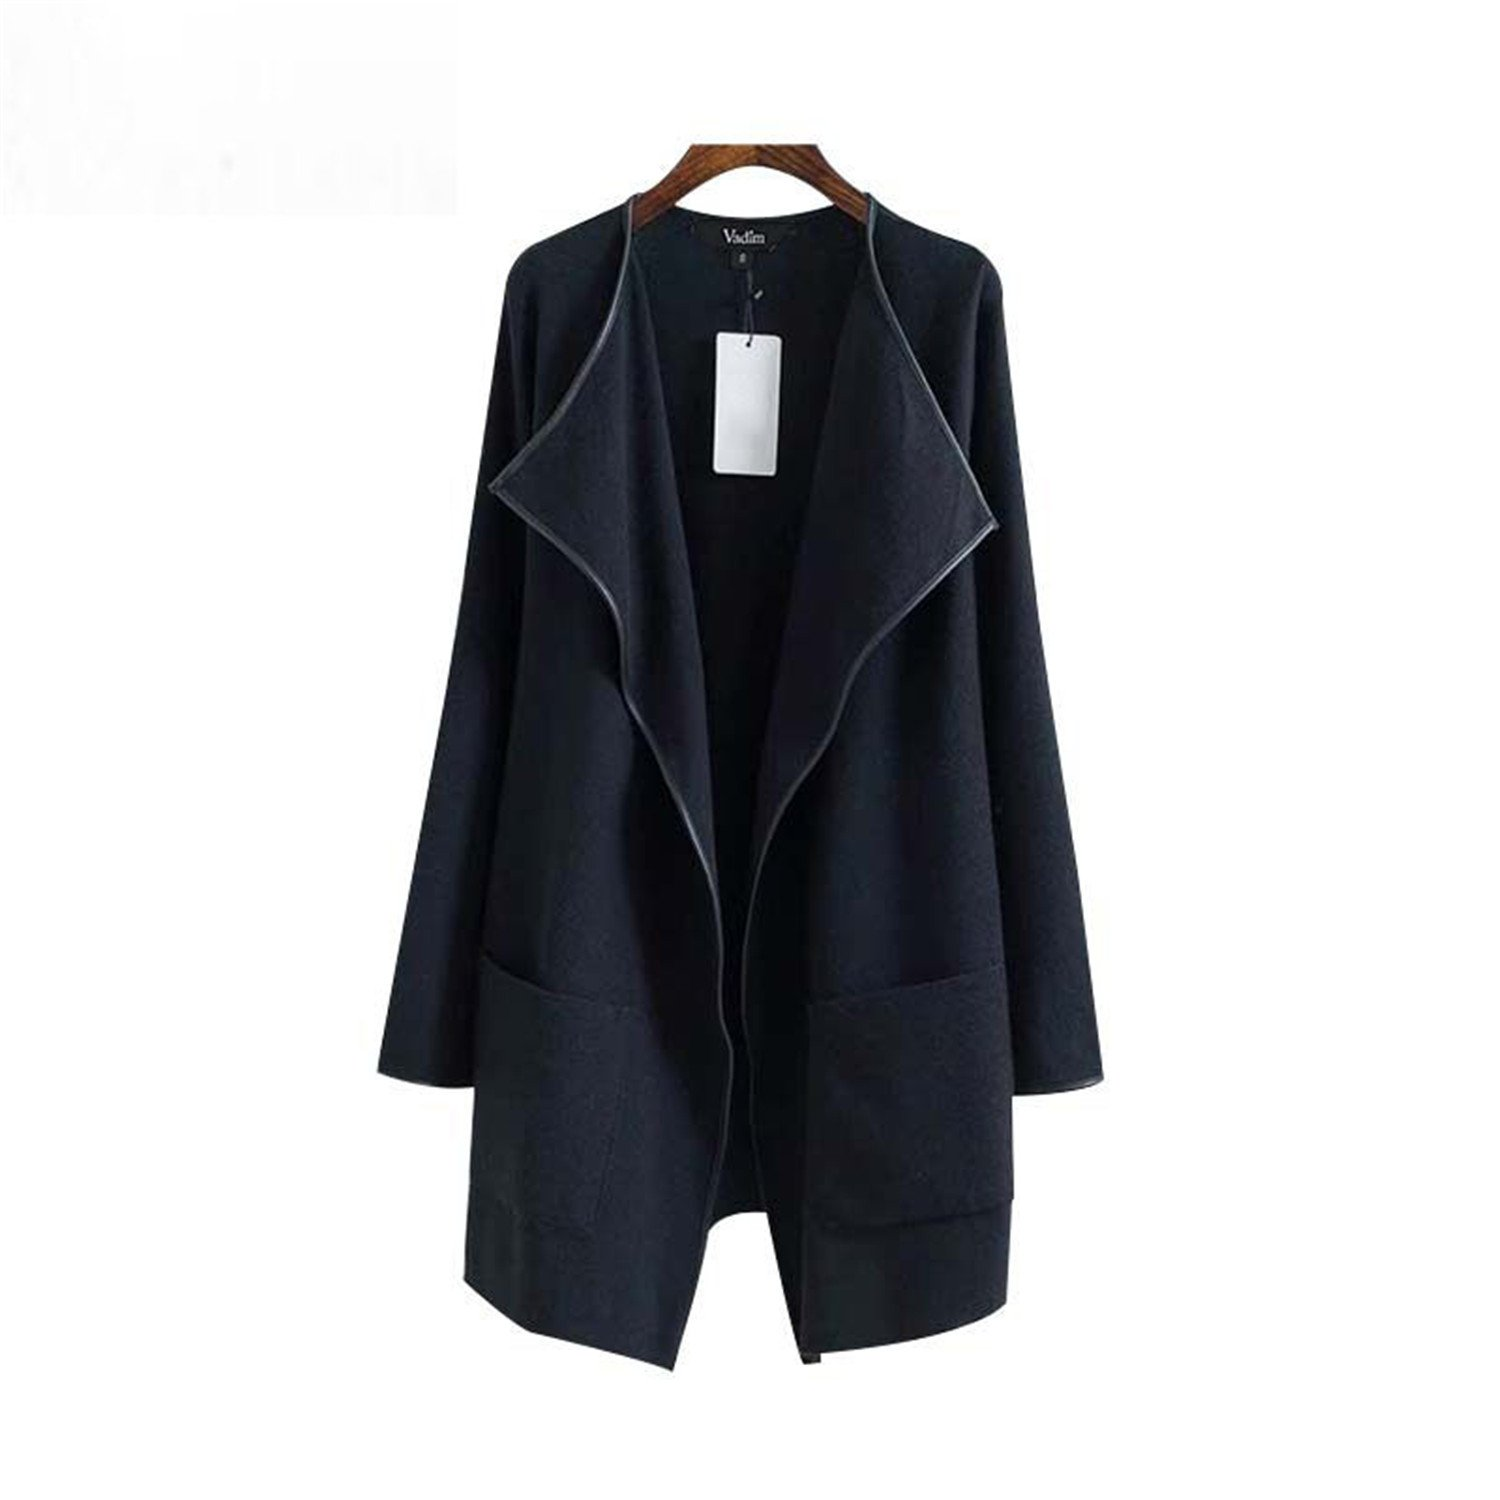 MRxcff Women Knitted Long Trench Coat Pockets Elastic Warm Edge PU Leather Elegant Ladies Autumn Casual Long Tops as picture2 M